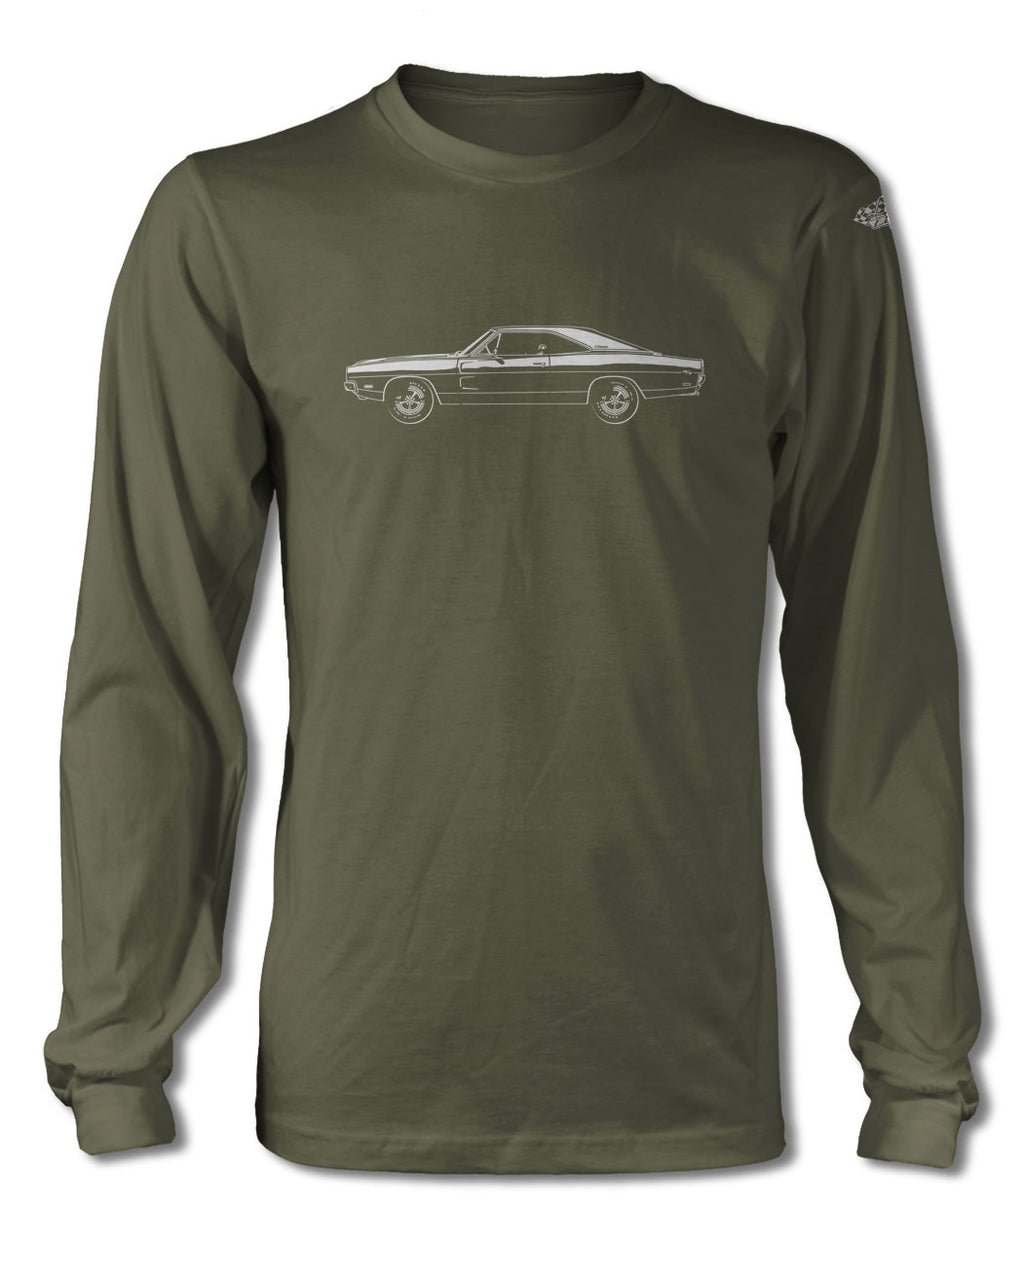 1969 Dodge Charger RT Hardtop T-Shirt - Long Sleeves - Side View